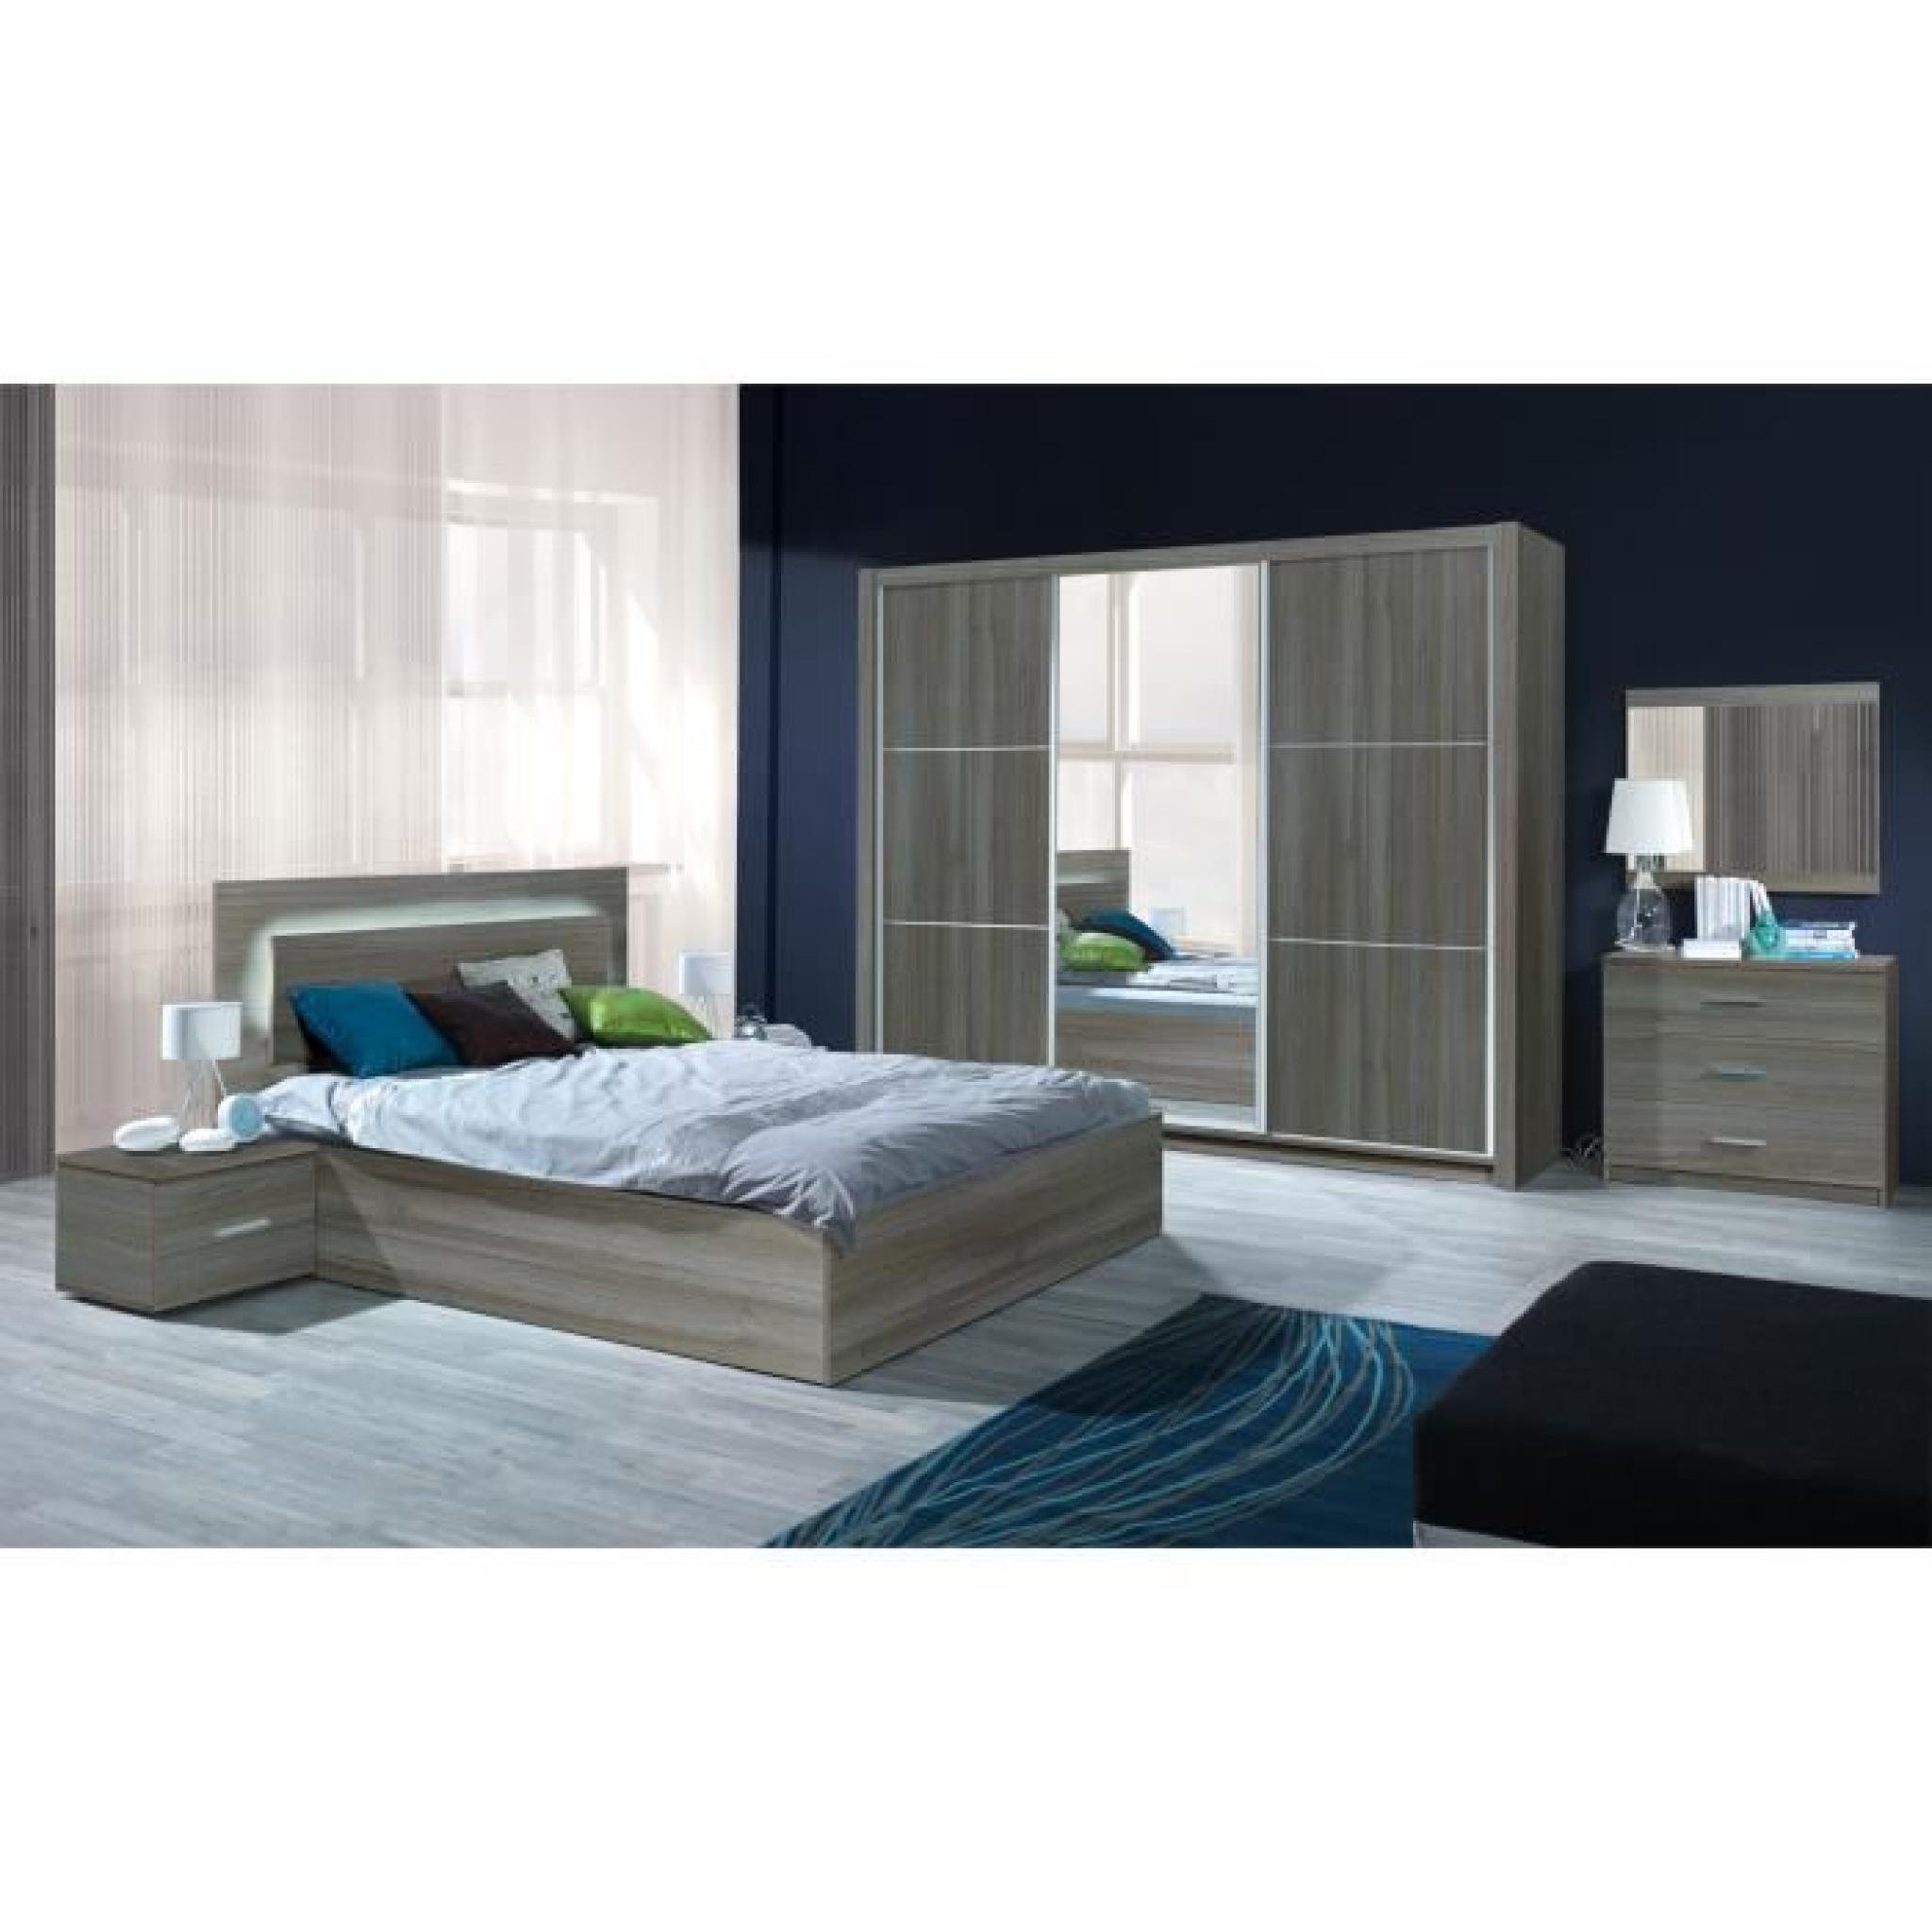 chambre couleur lin et bleu avec des id es. Black Bedroom Furniture Sets. Home Design Ideas